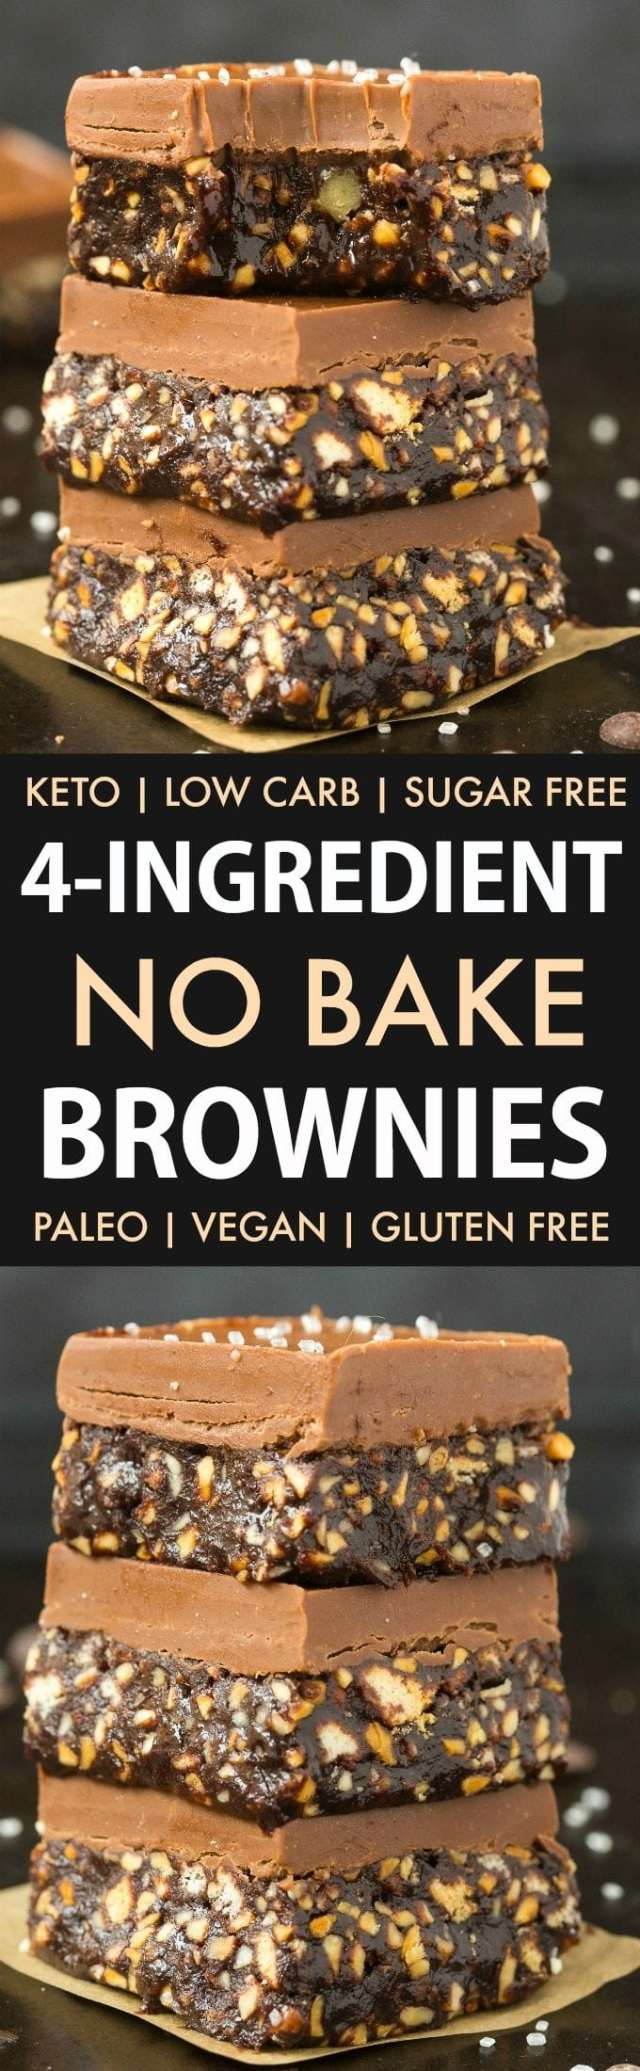 4-Ingredient No Bake Brownies